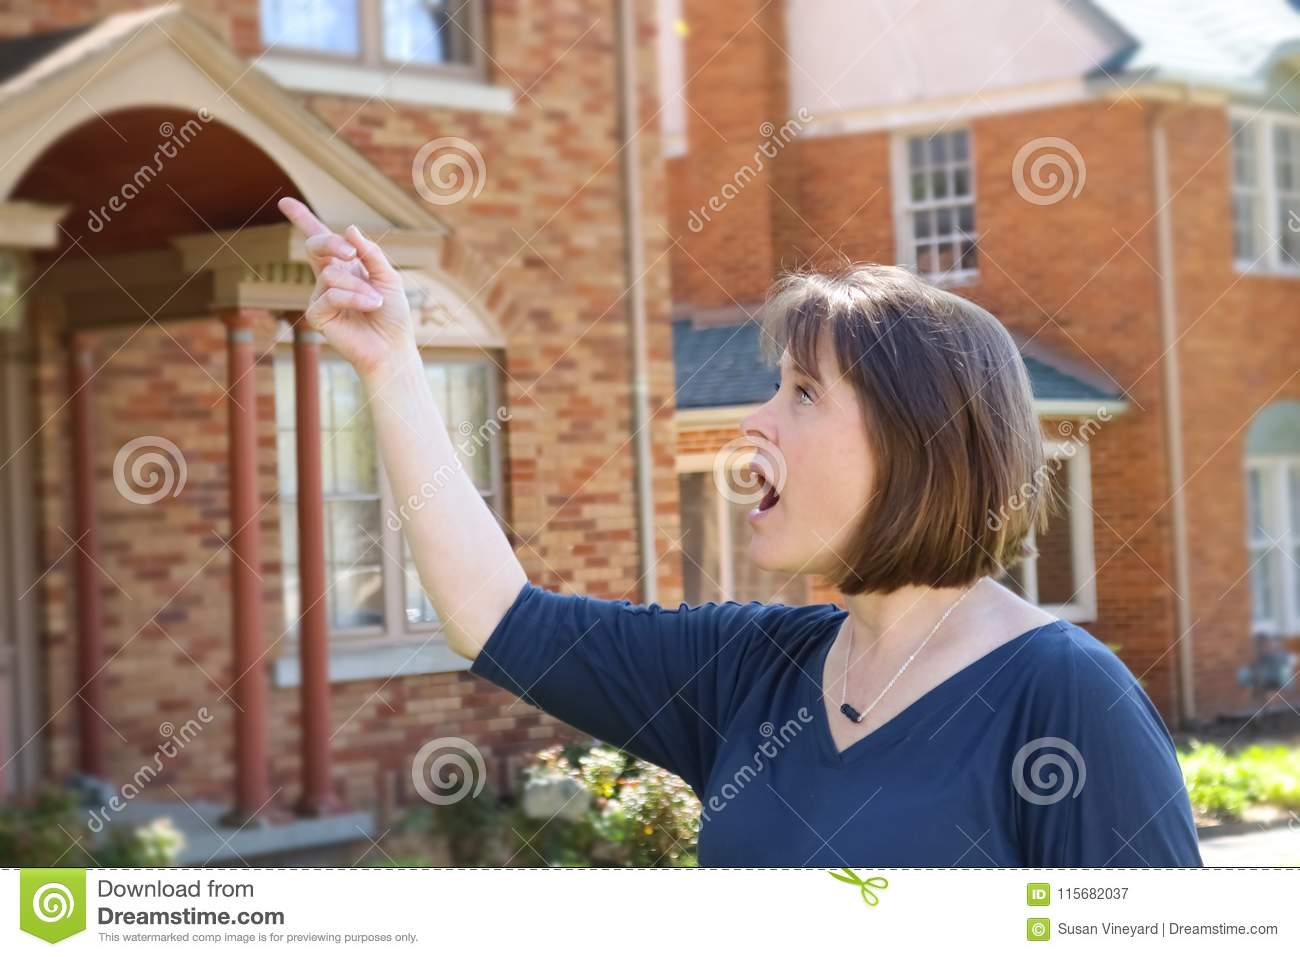 Woman with short hair in front of blurred brick houses points and looks surprised